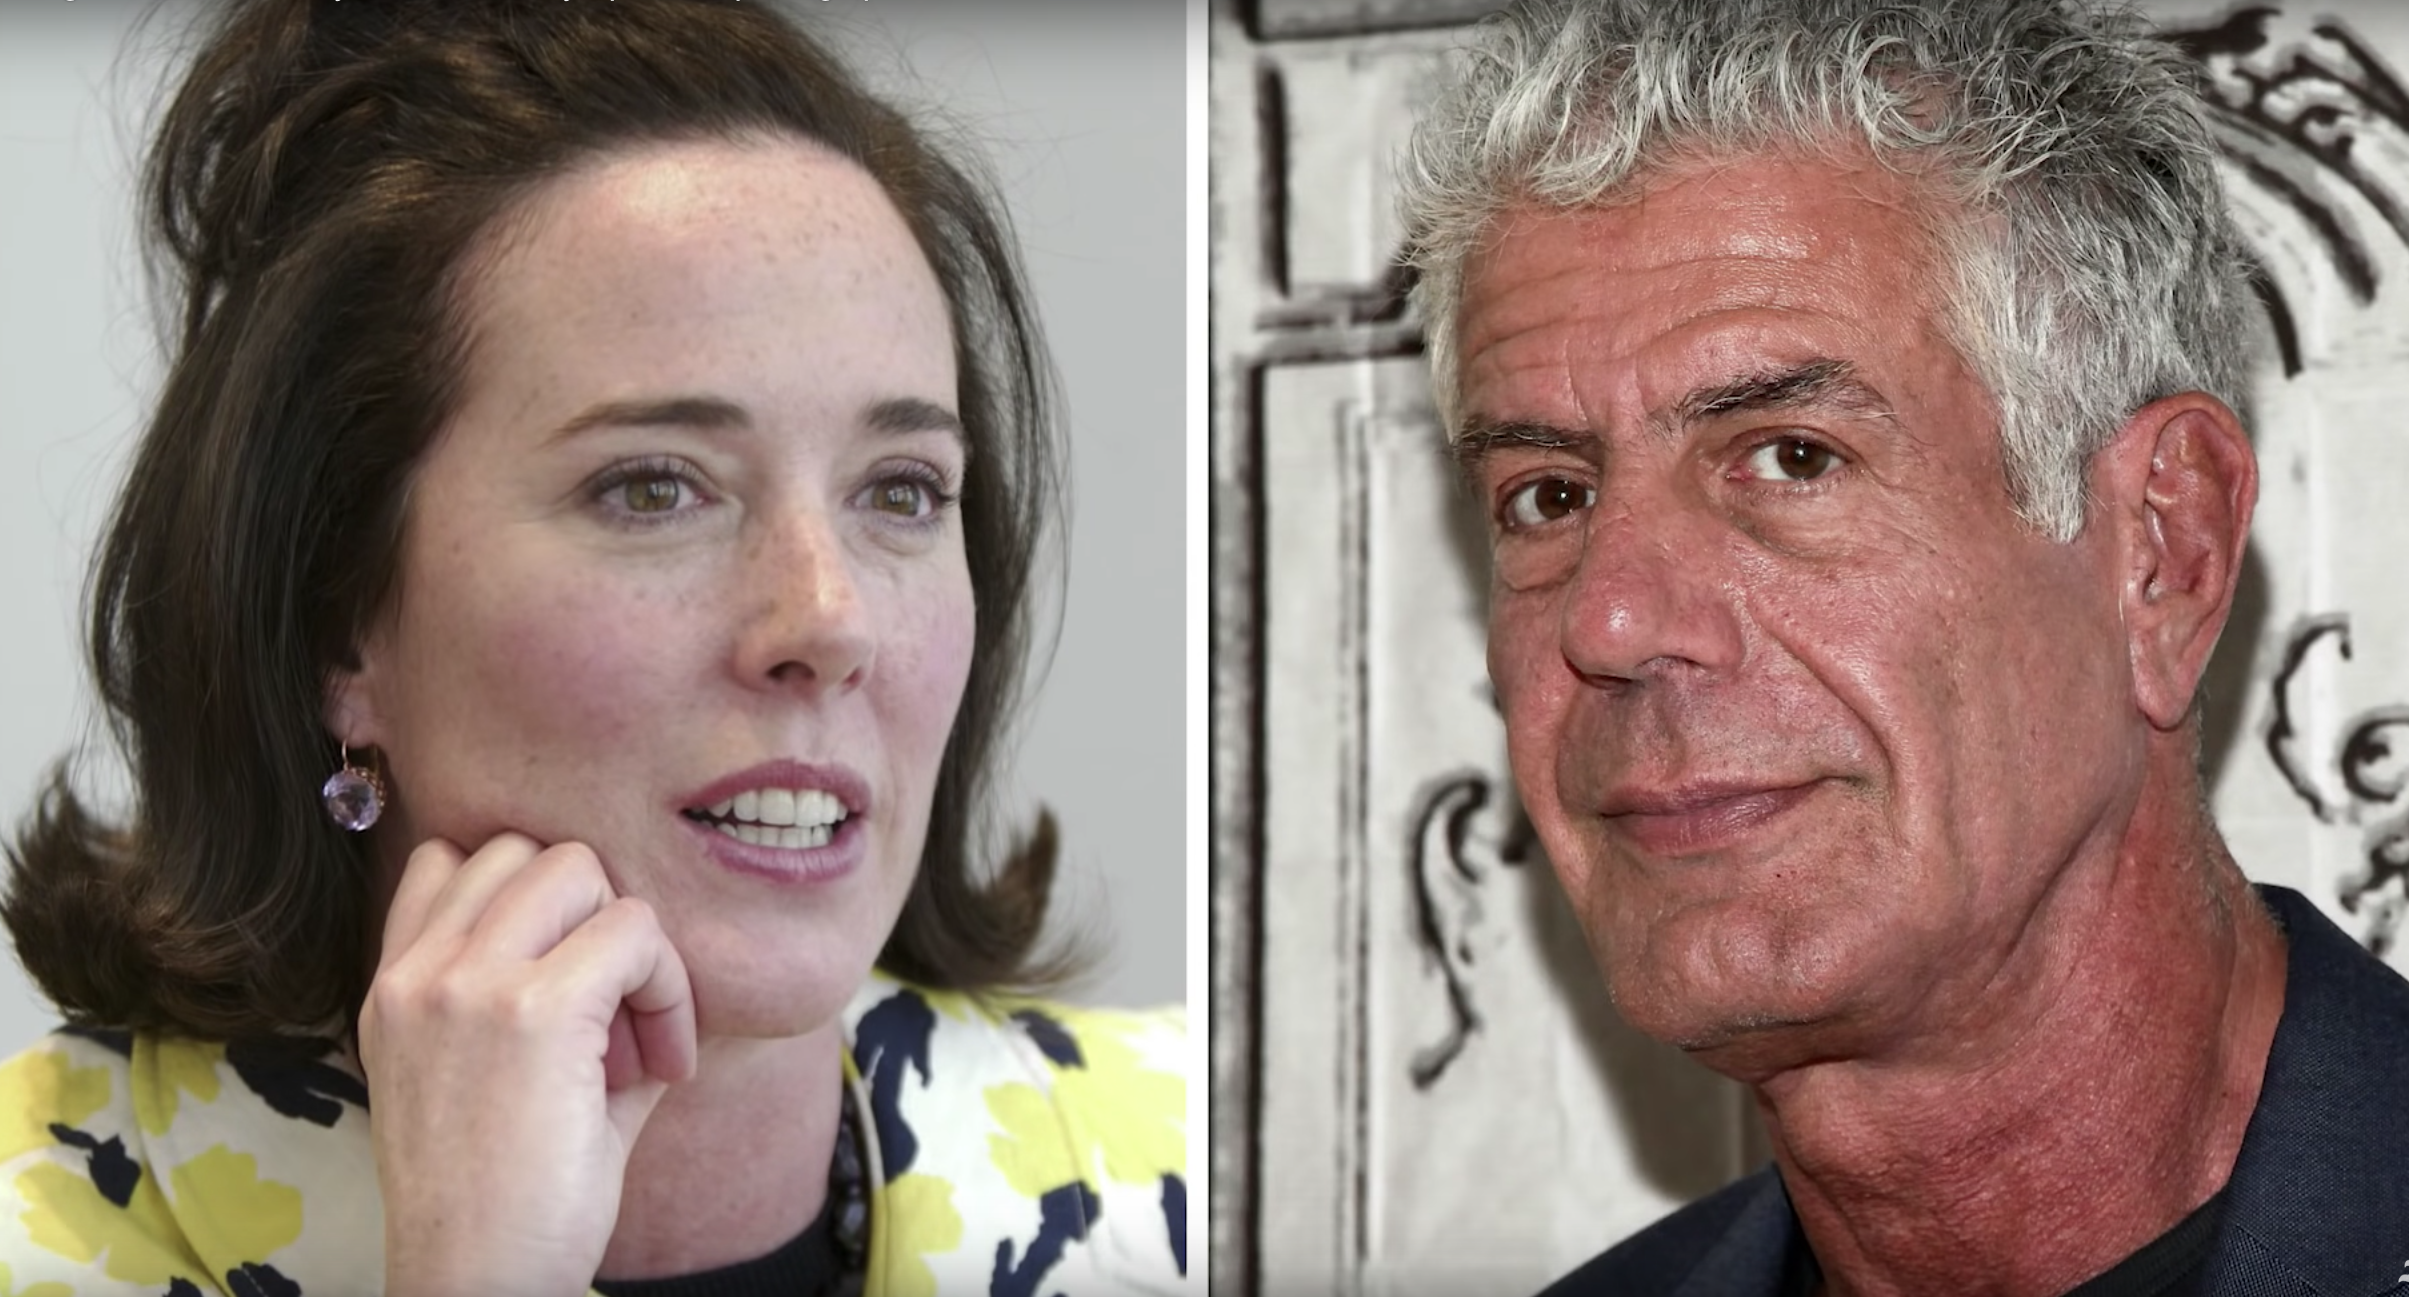 The recent suicides of Kate Spade and Anthony Bourdain have compelled  Juli to open up.